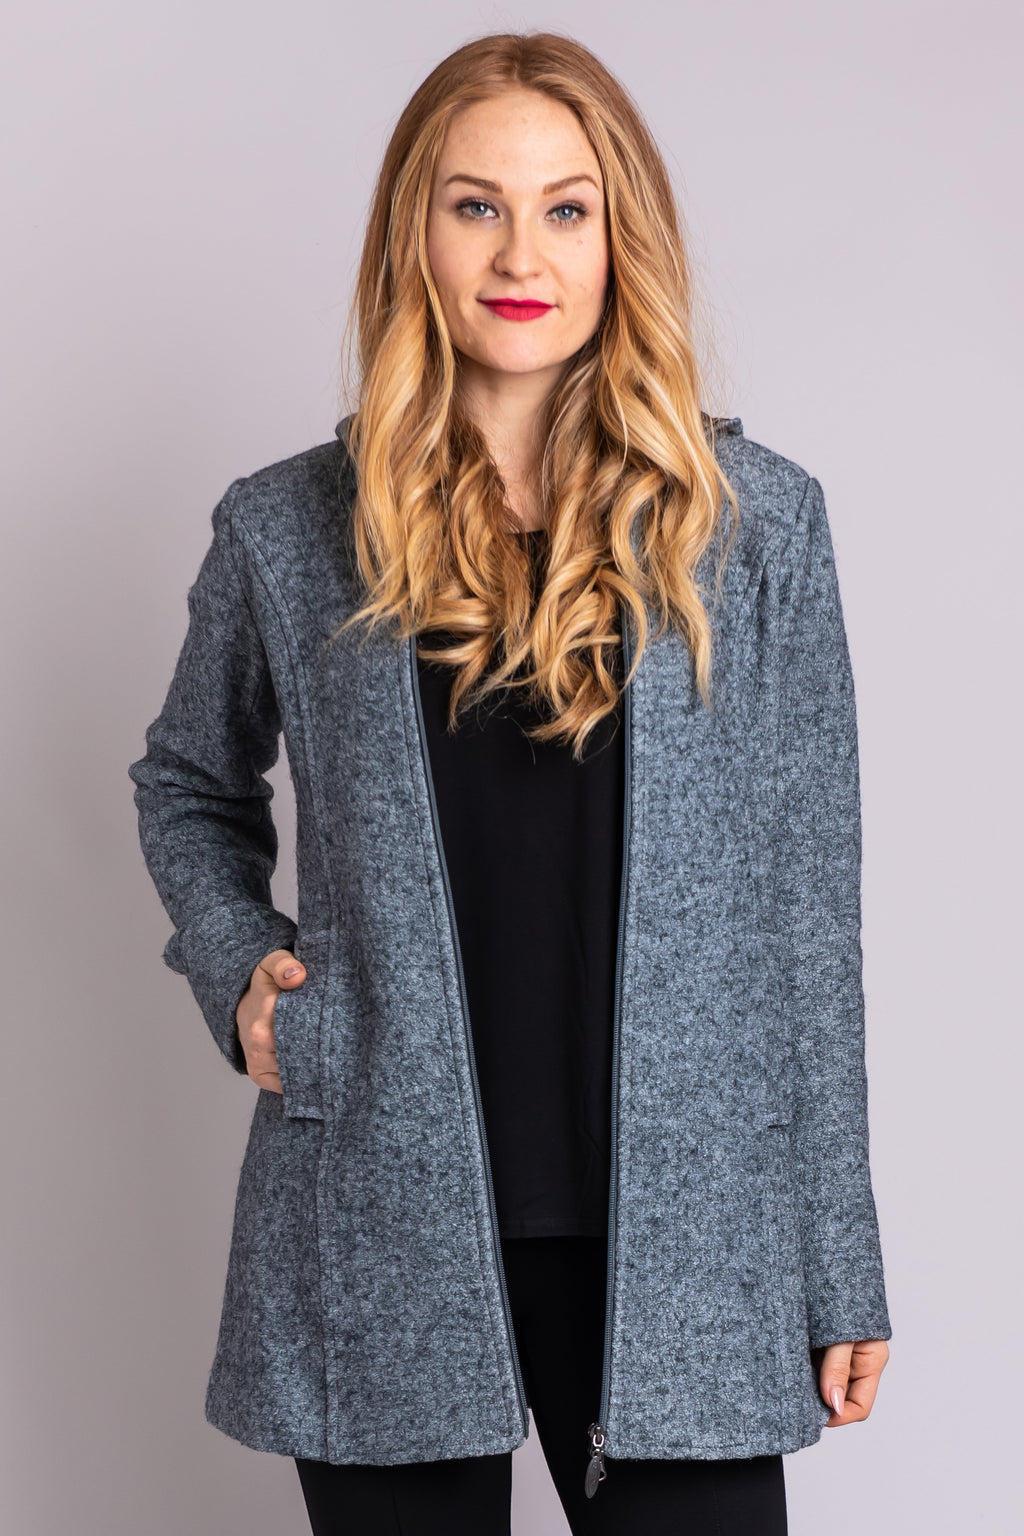 Pender Coat, Pearl Grey, Wool - Blue Sky Clothing Co